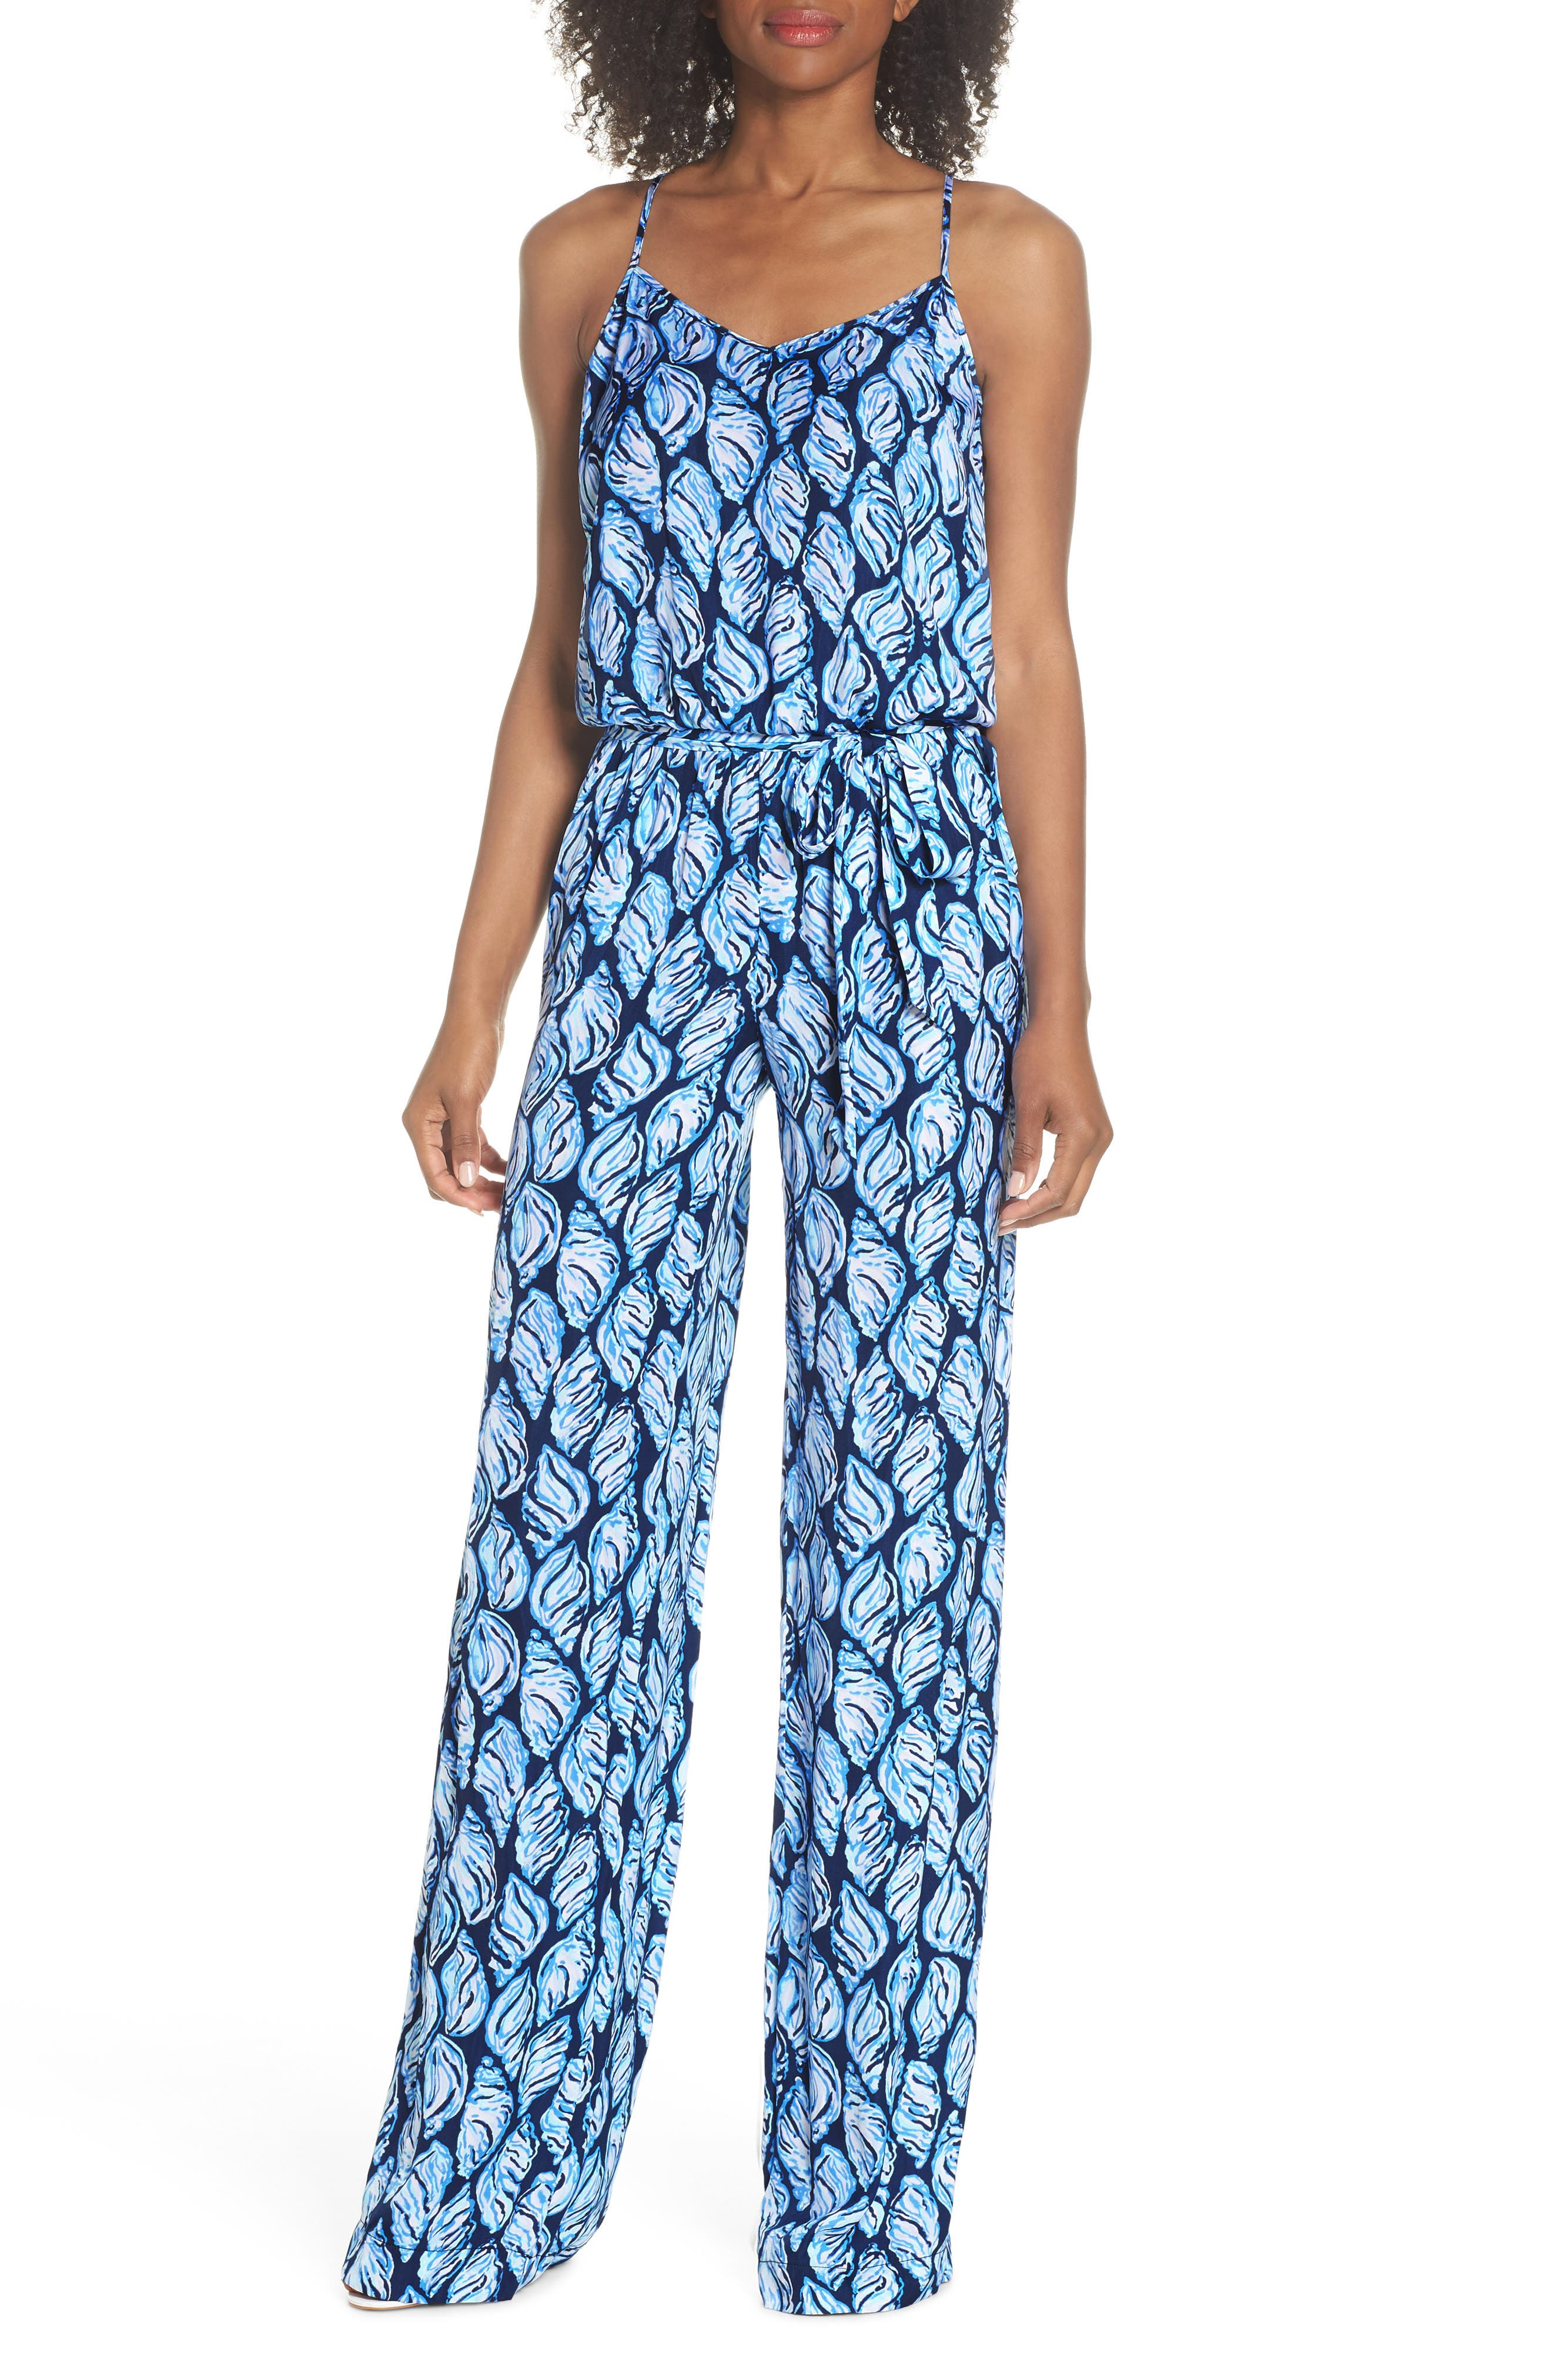 Lilly Pulizter<sup>®</sup> Dusk Sleeveless Jumpsuit,                             Main thumbnail 1, color,                             High Tide Drop In